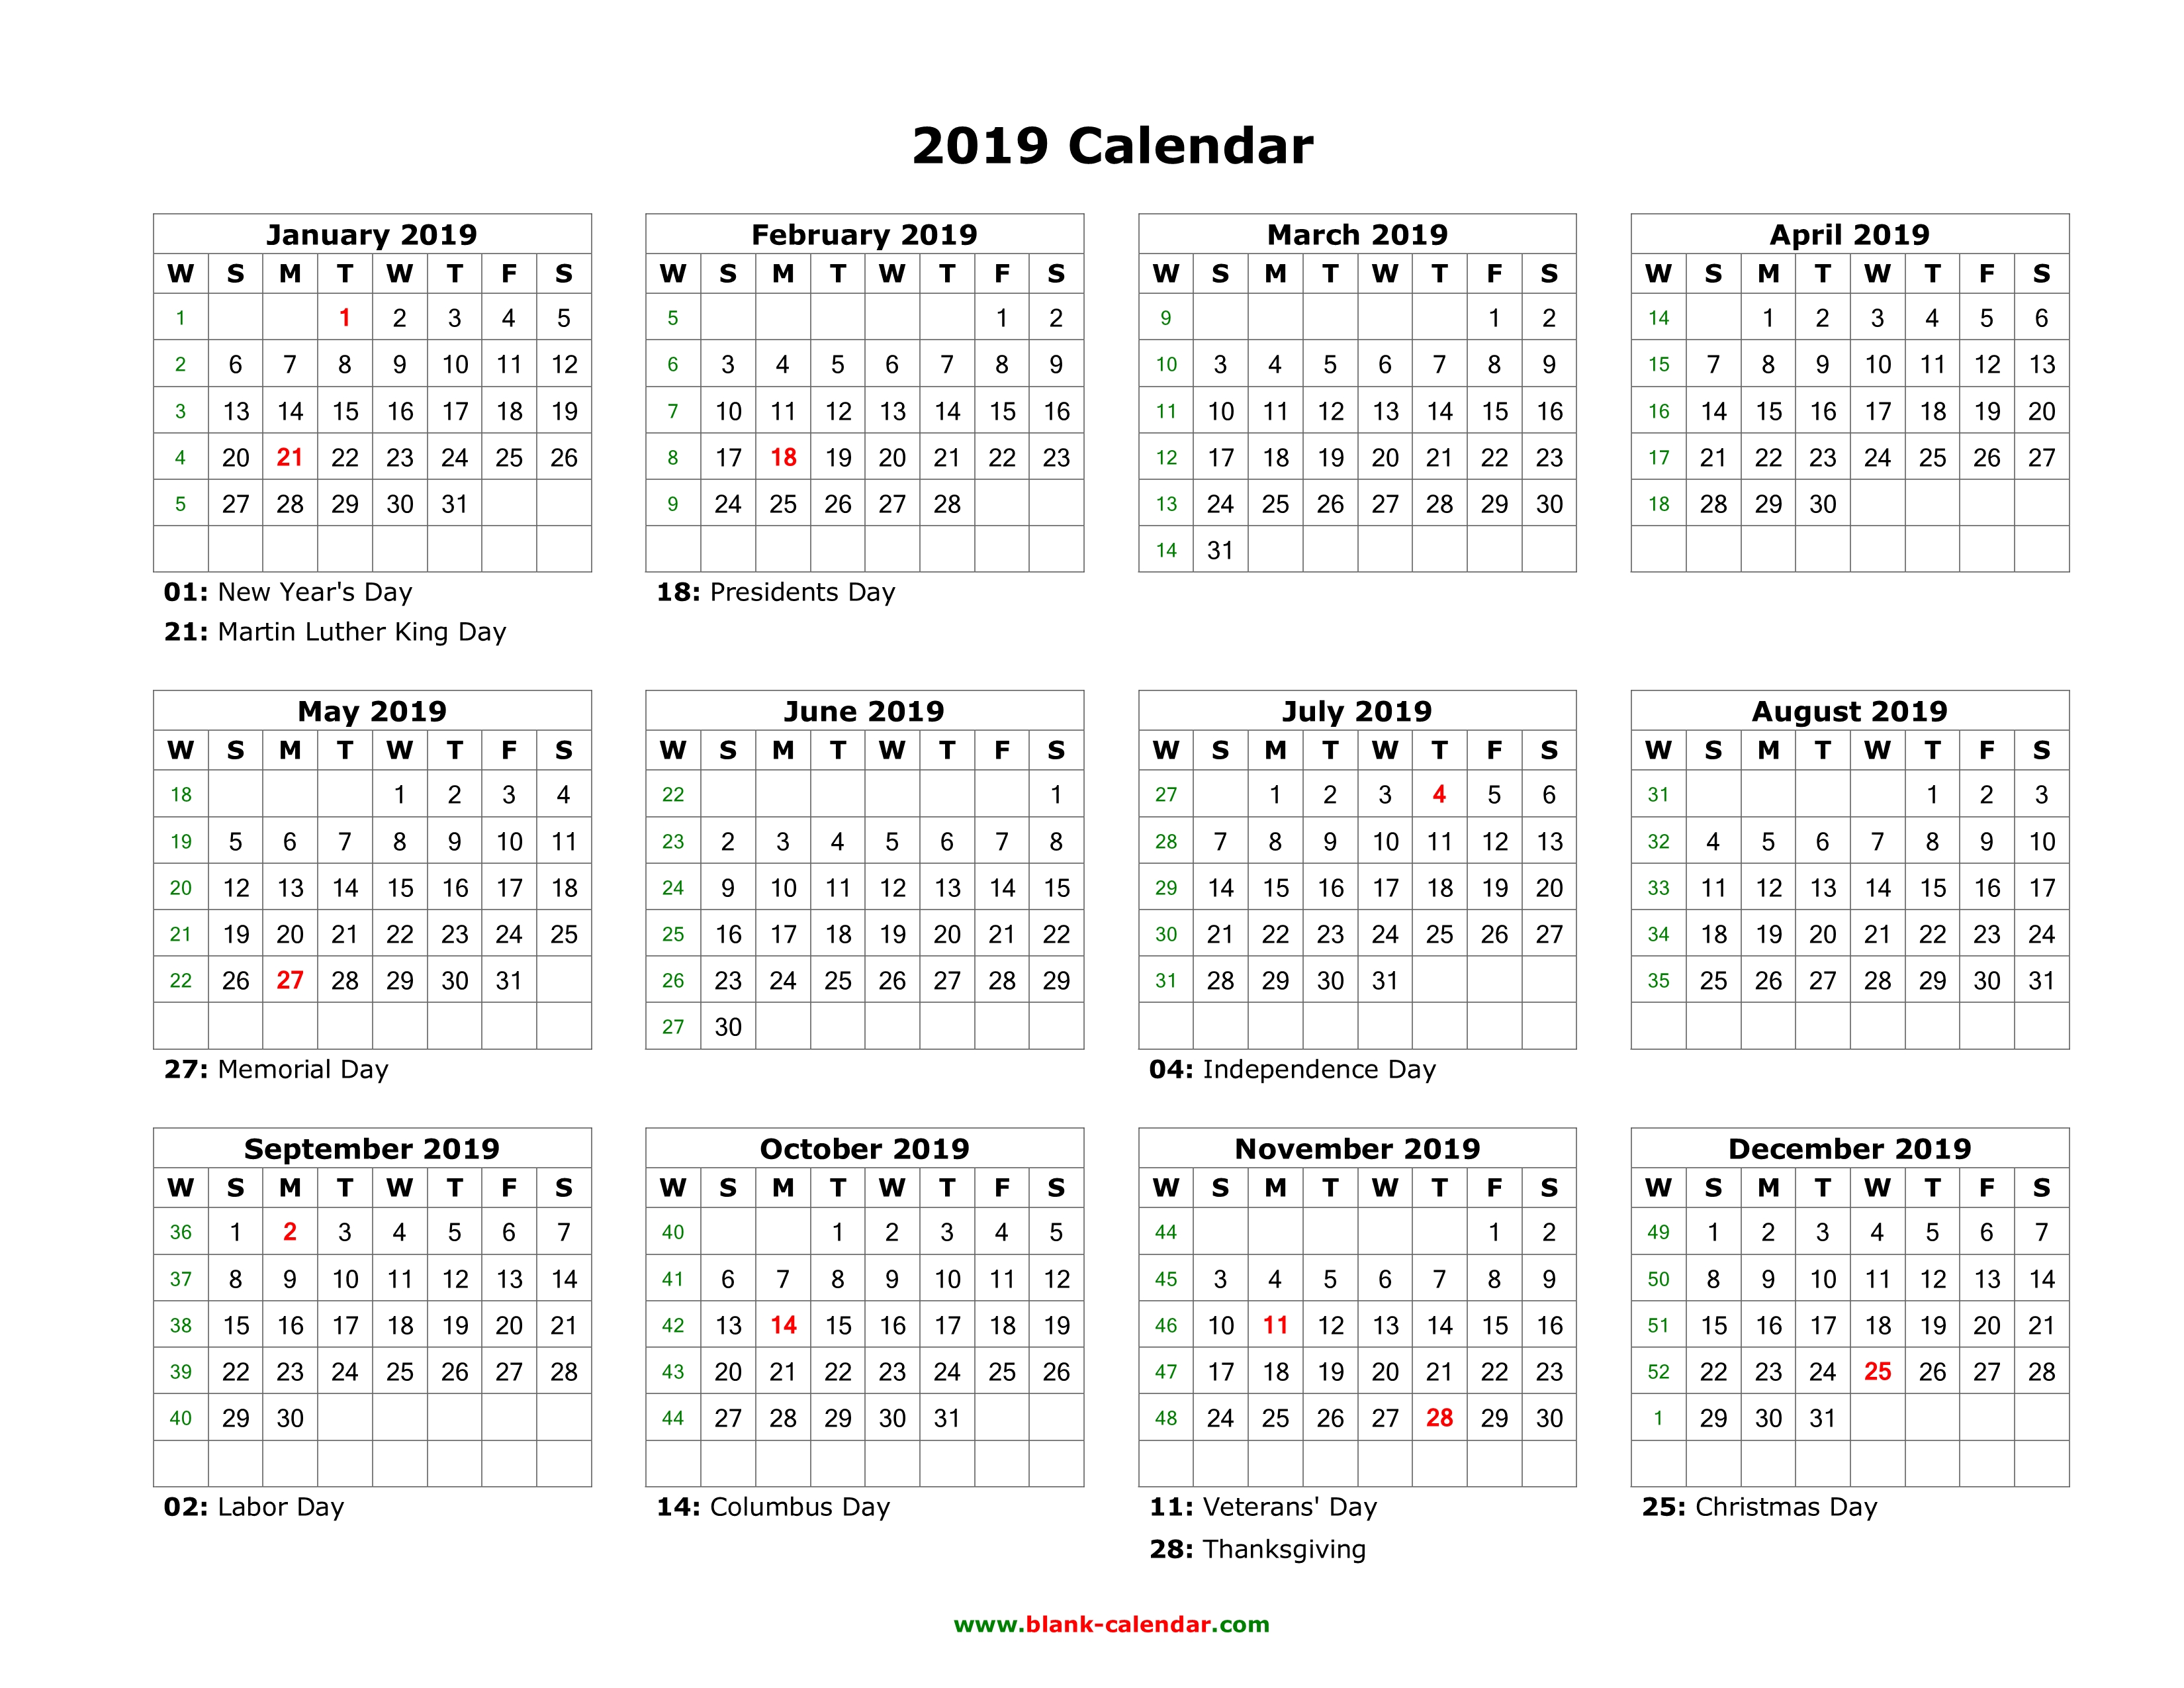 blank calendar 2019 us holidays one page horizontal